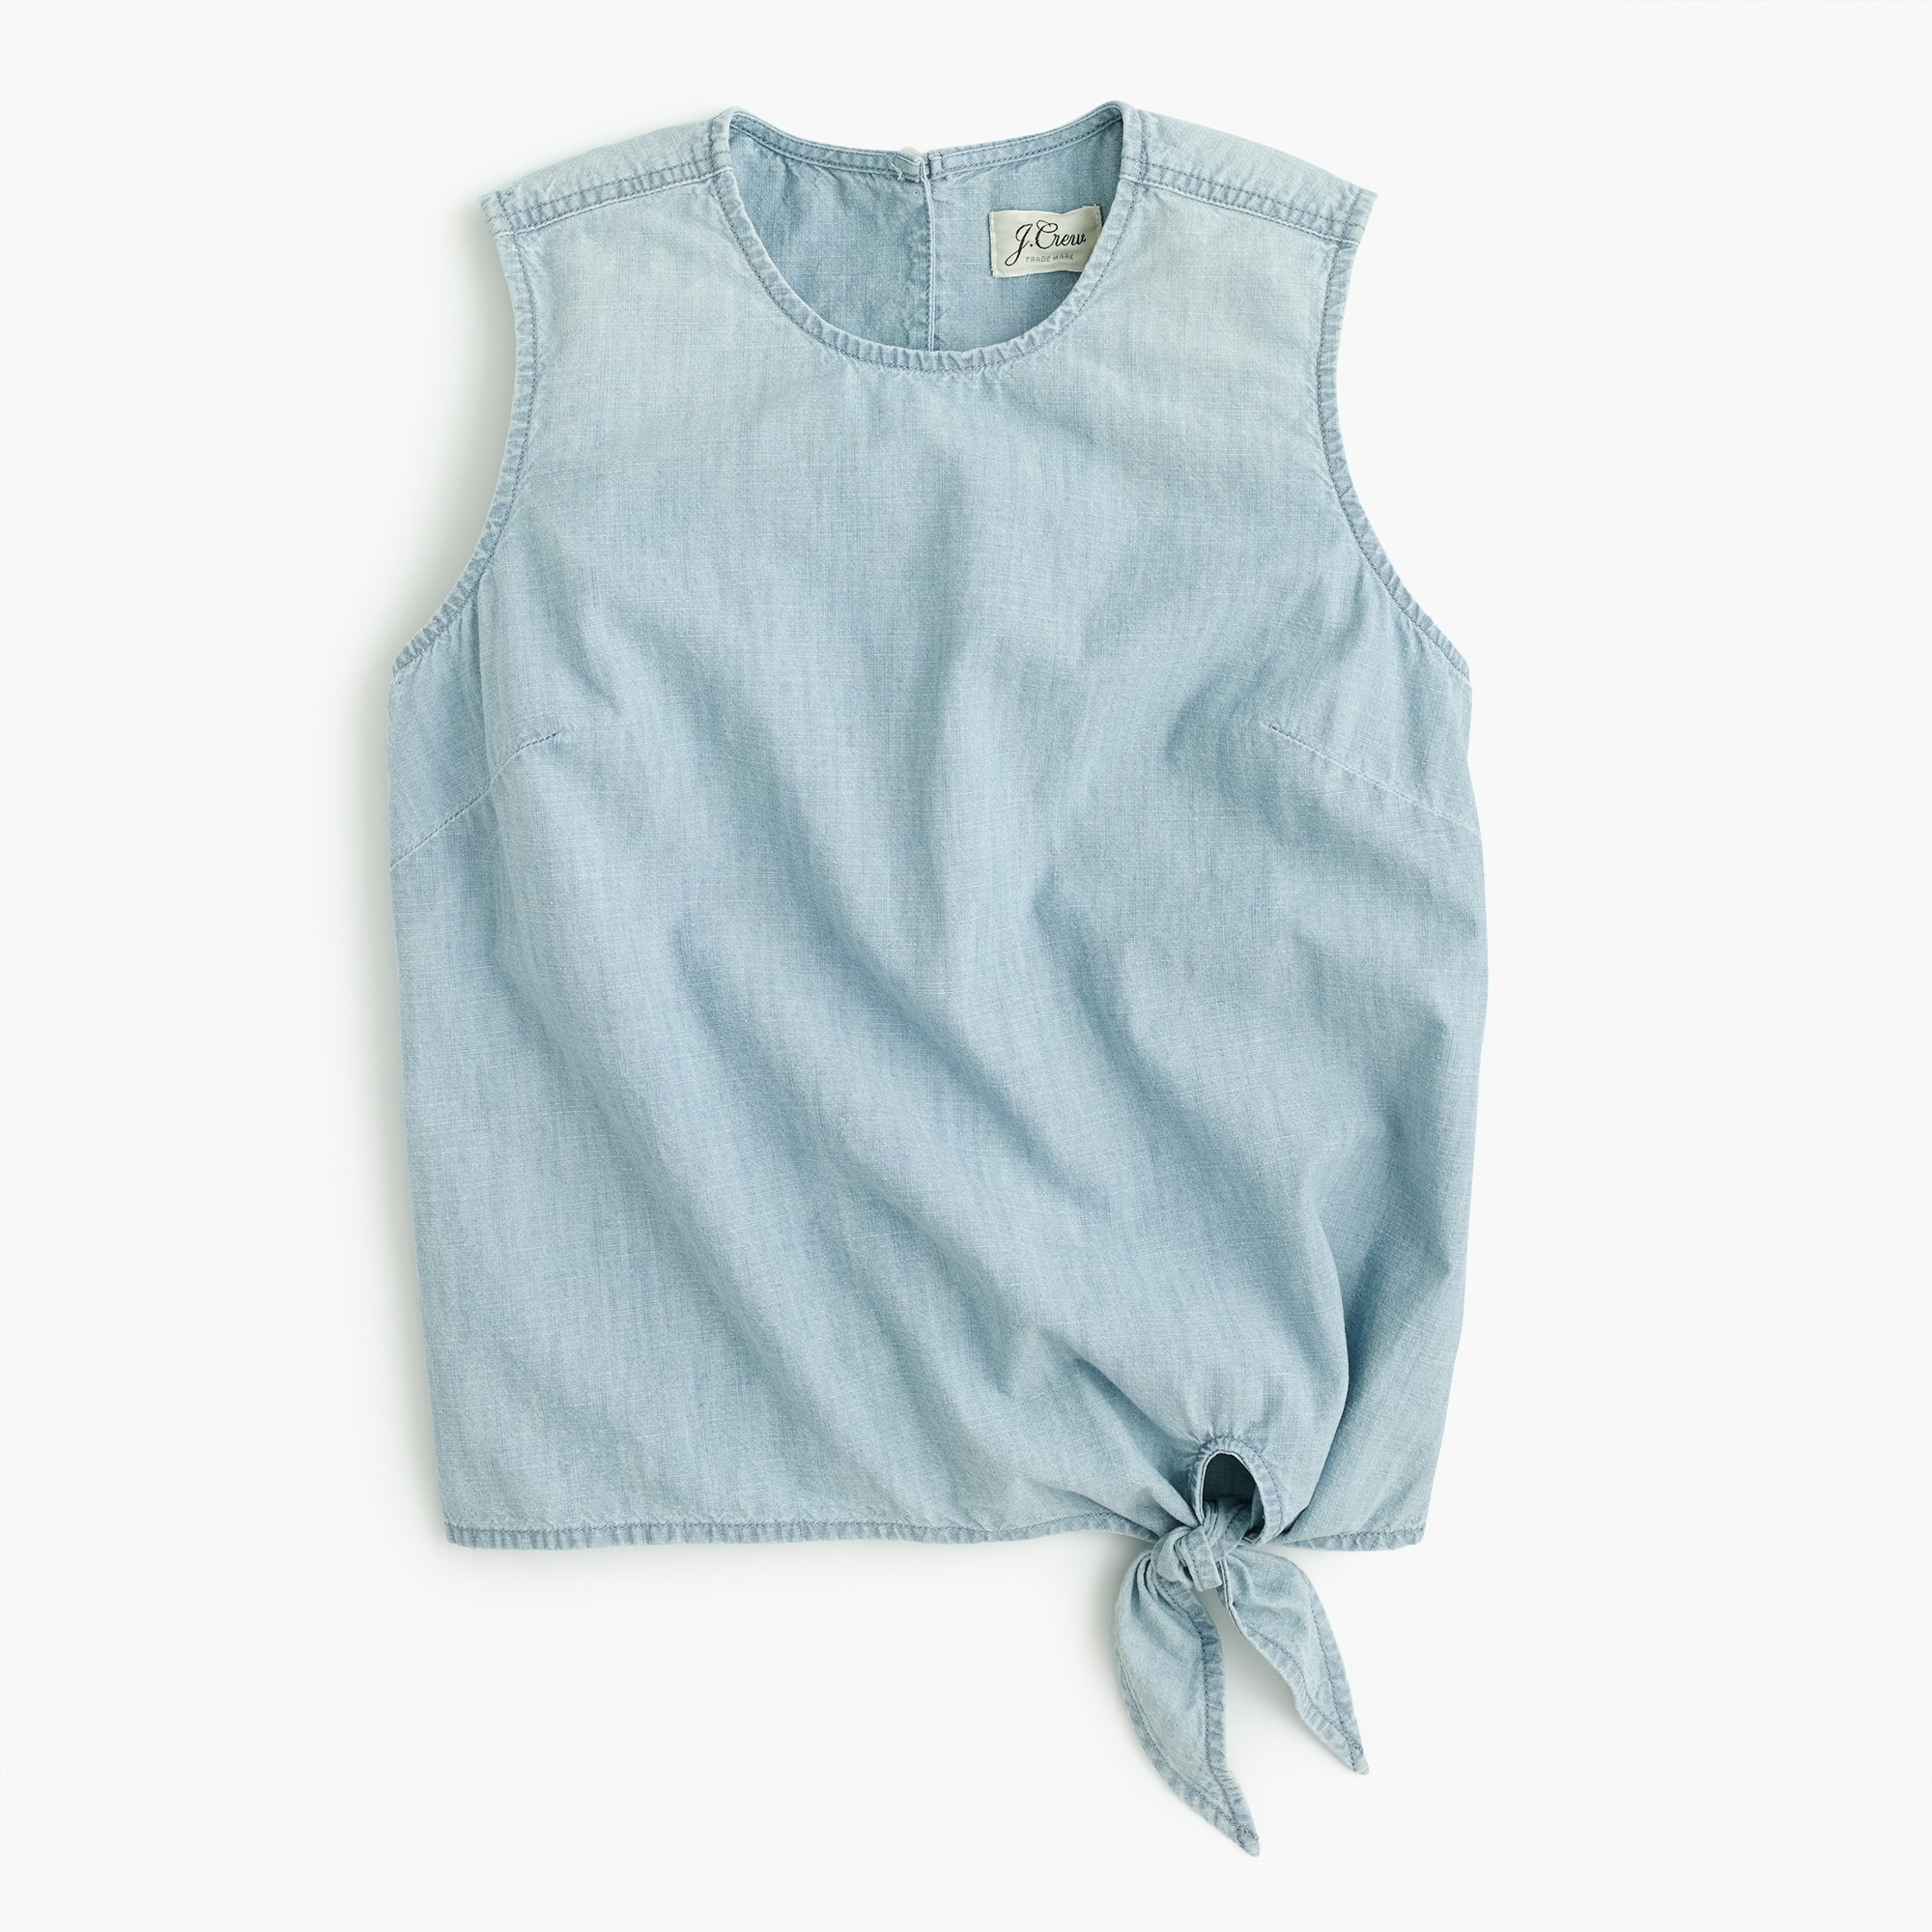 Image 2 for Chambray tie-waist top